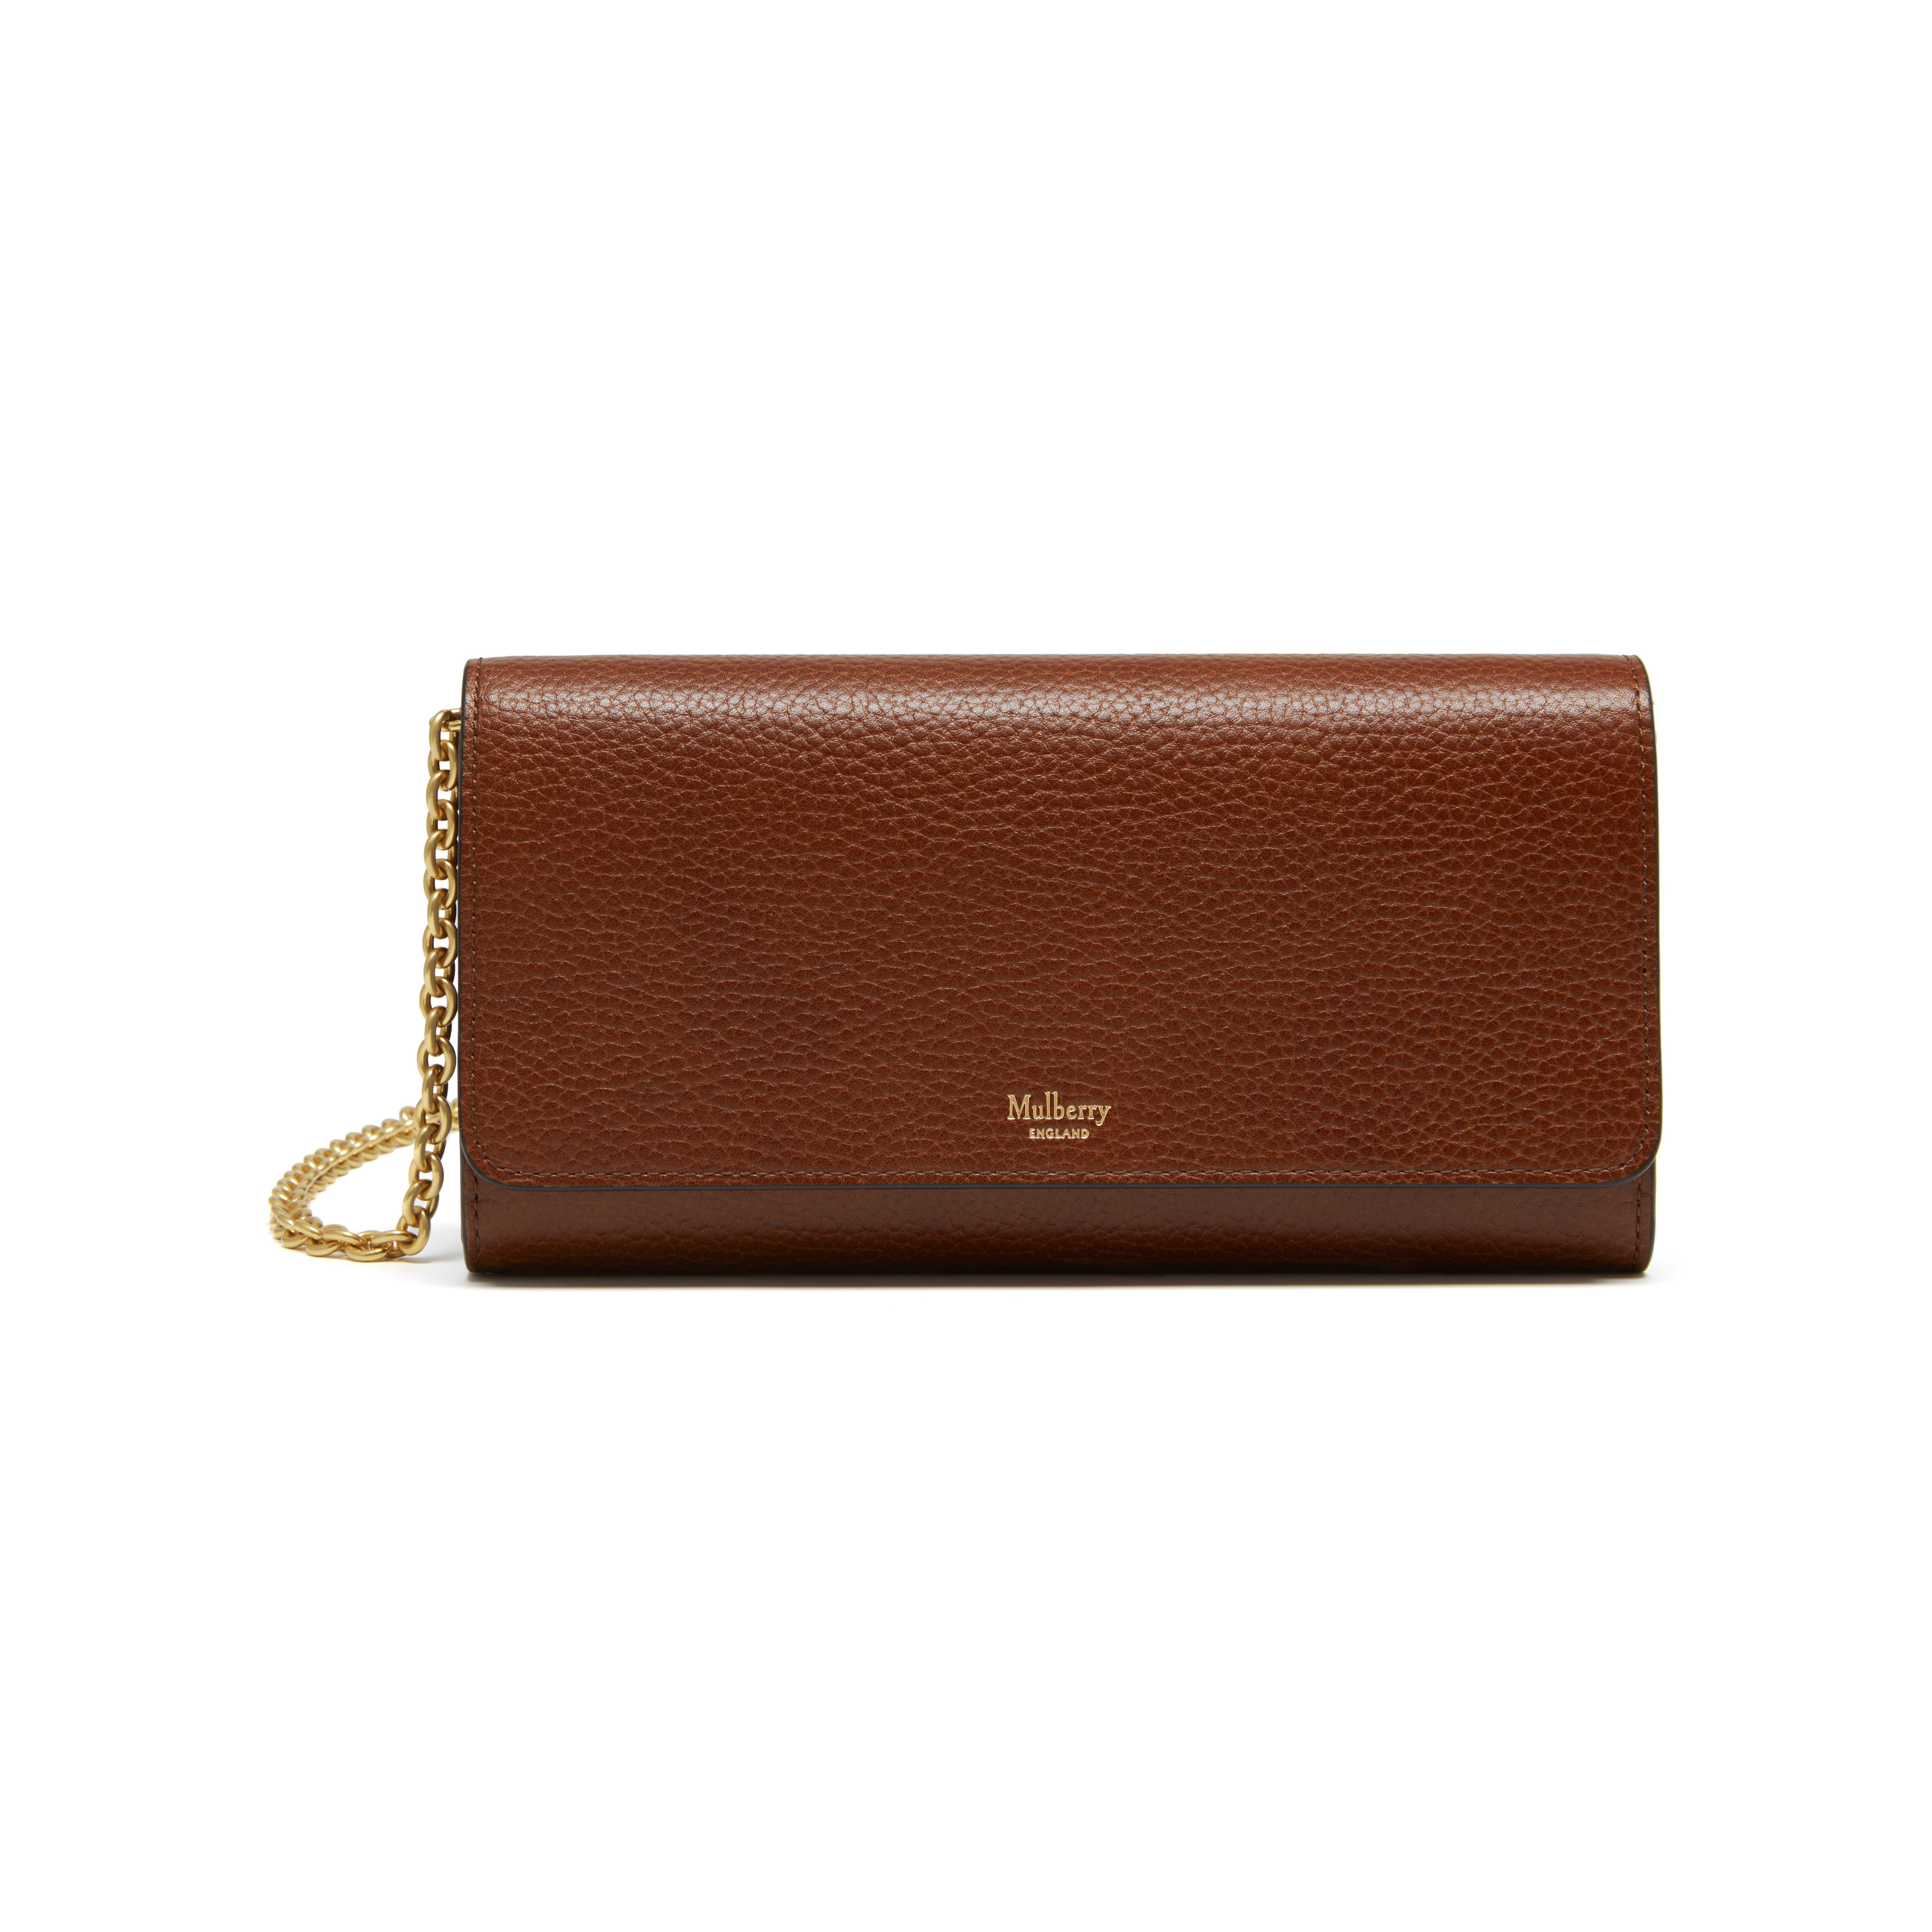 d1d712aa48 Shop the Continental Clutch in Oak Natural Grain Leather at Mulberry.com.  Introducing the new Continental Clutch